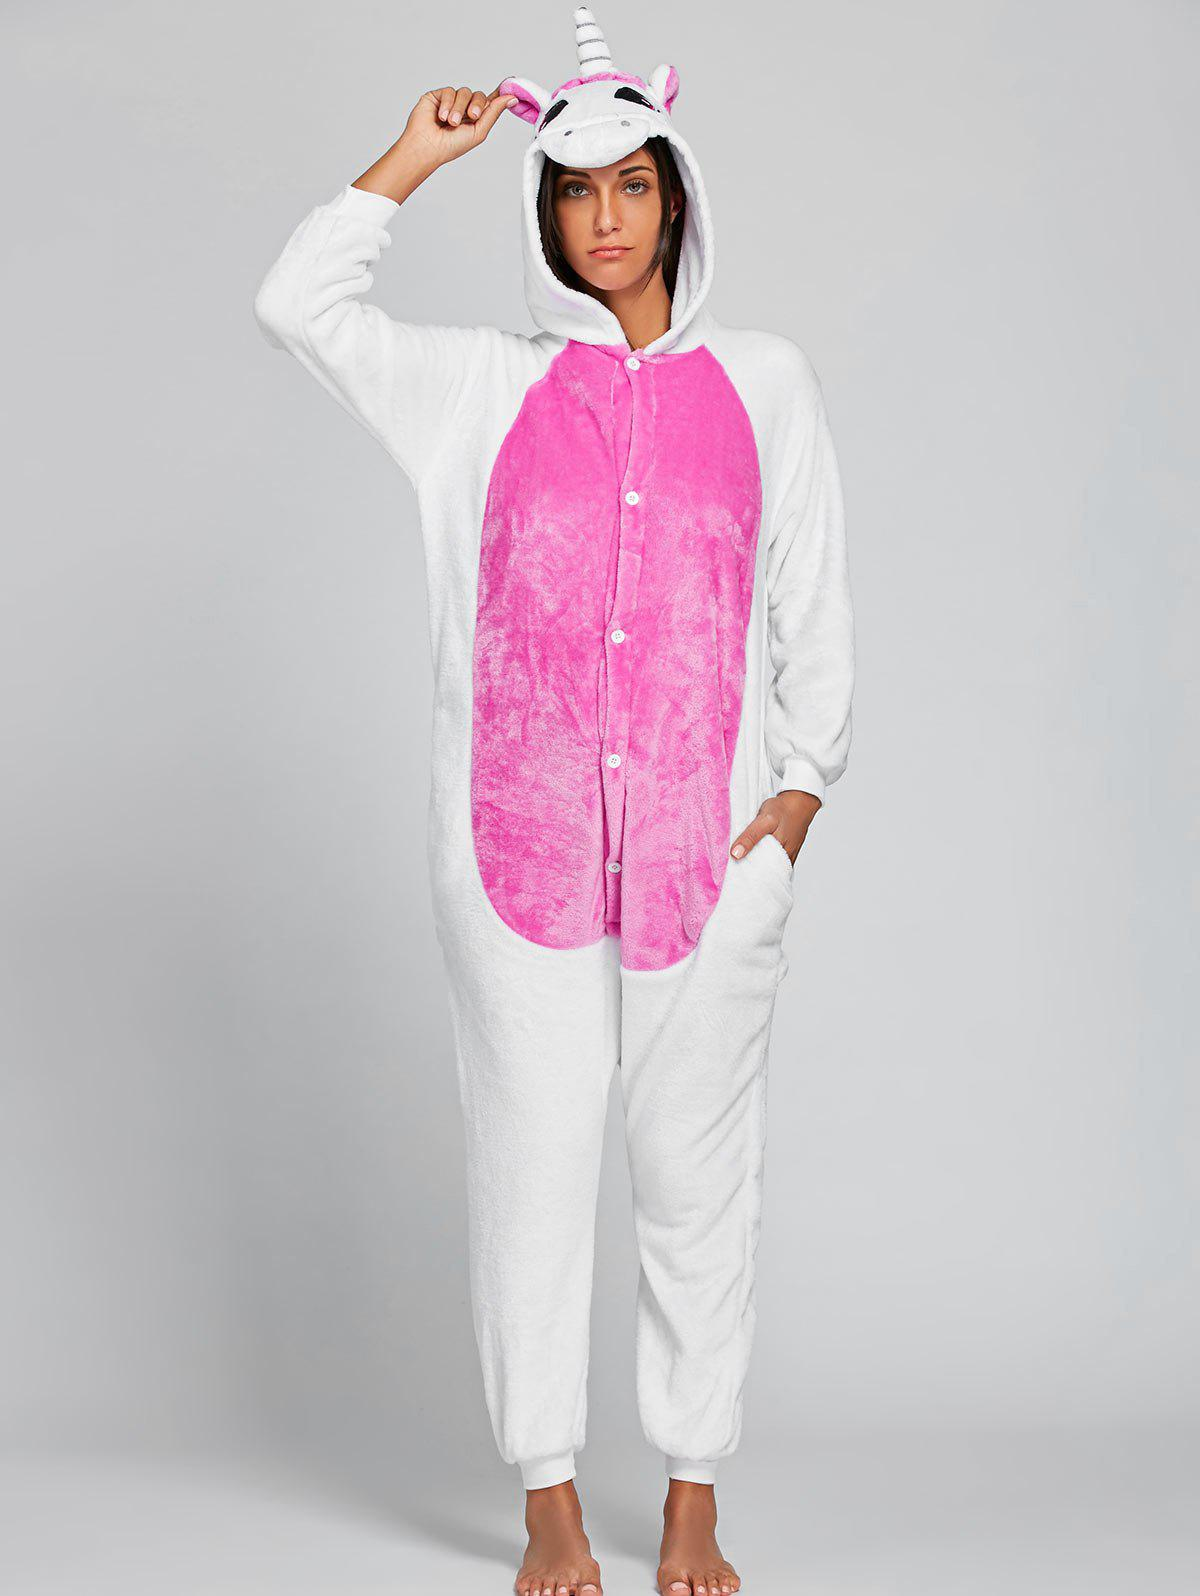 2019 Adult Cute Unicorn Animal Onesie Pajama  428faf393ca3